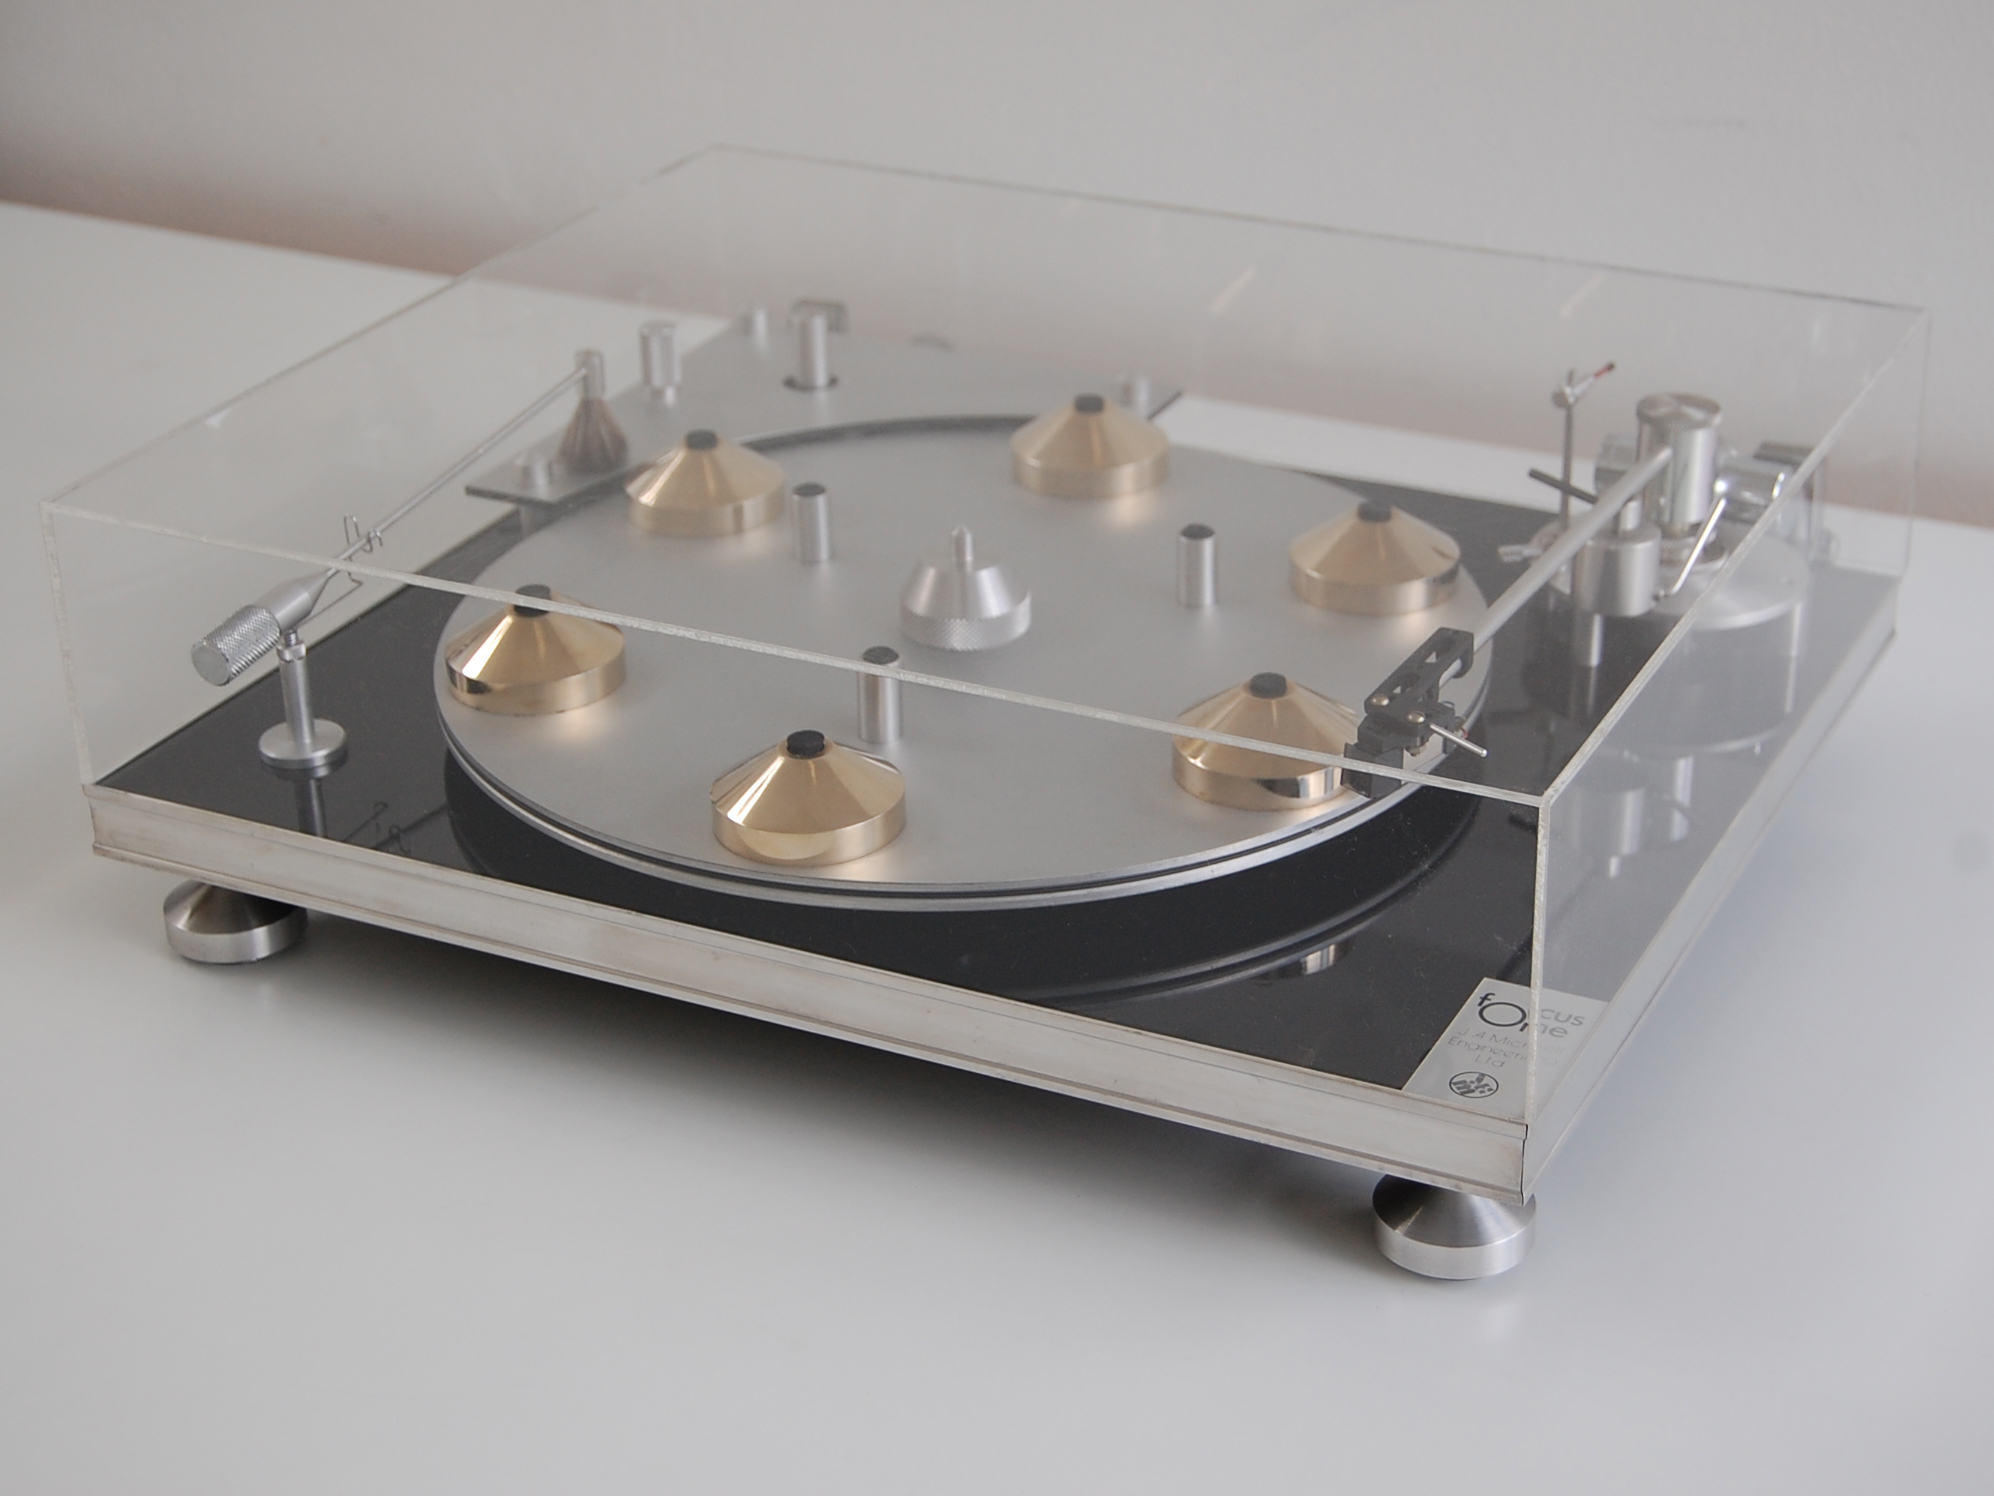 J A Michell Engineering Focus One Turntable 1977 Works Of Design